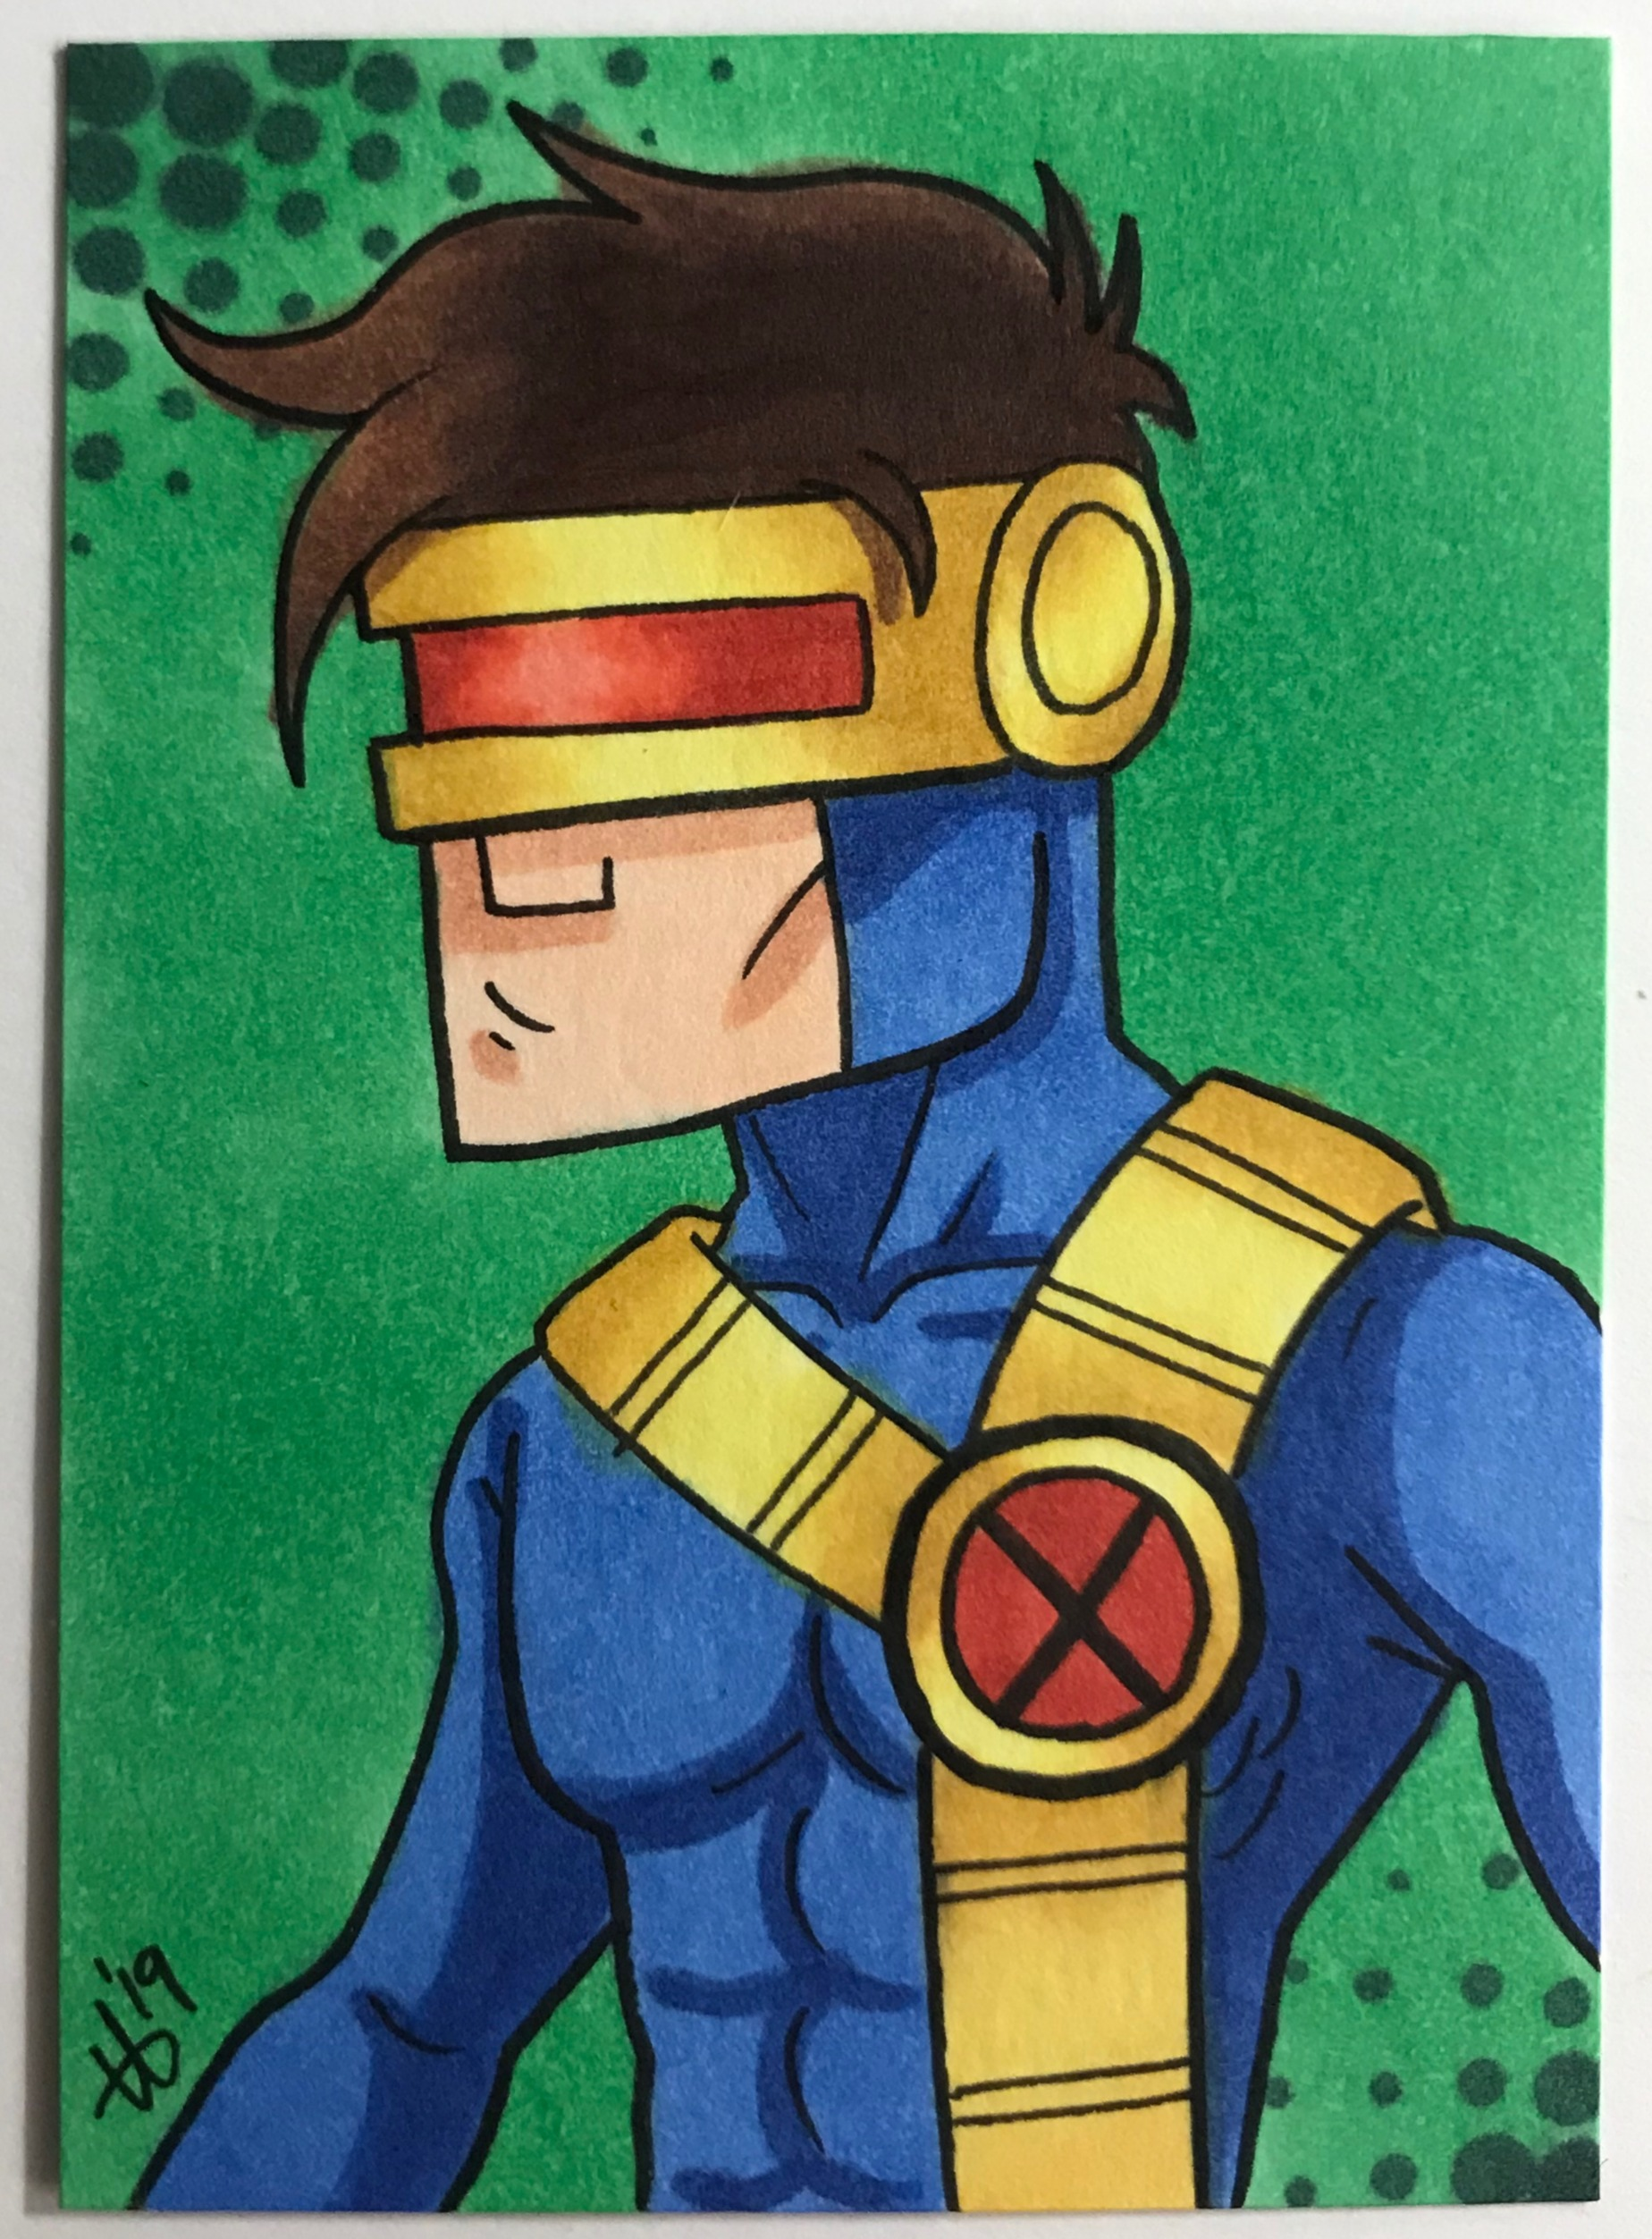 Cartoony Cyclops